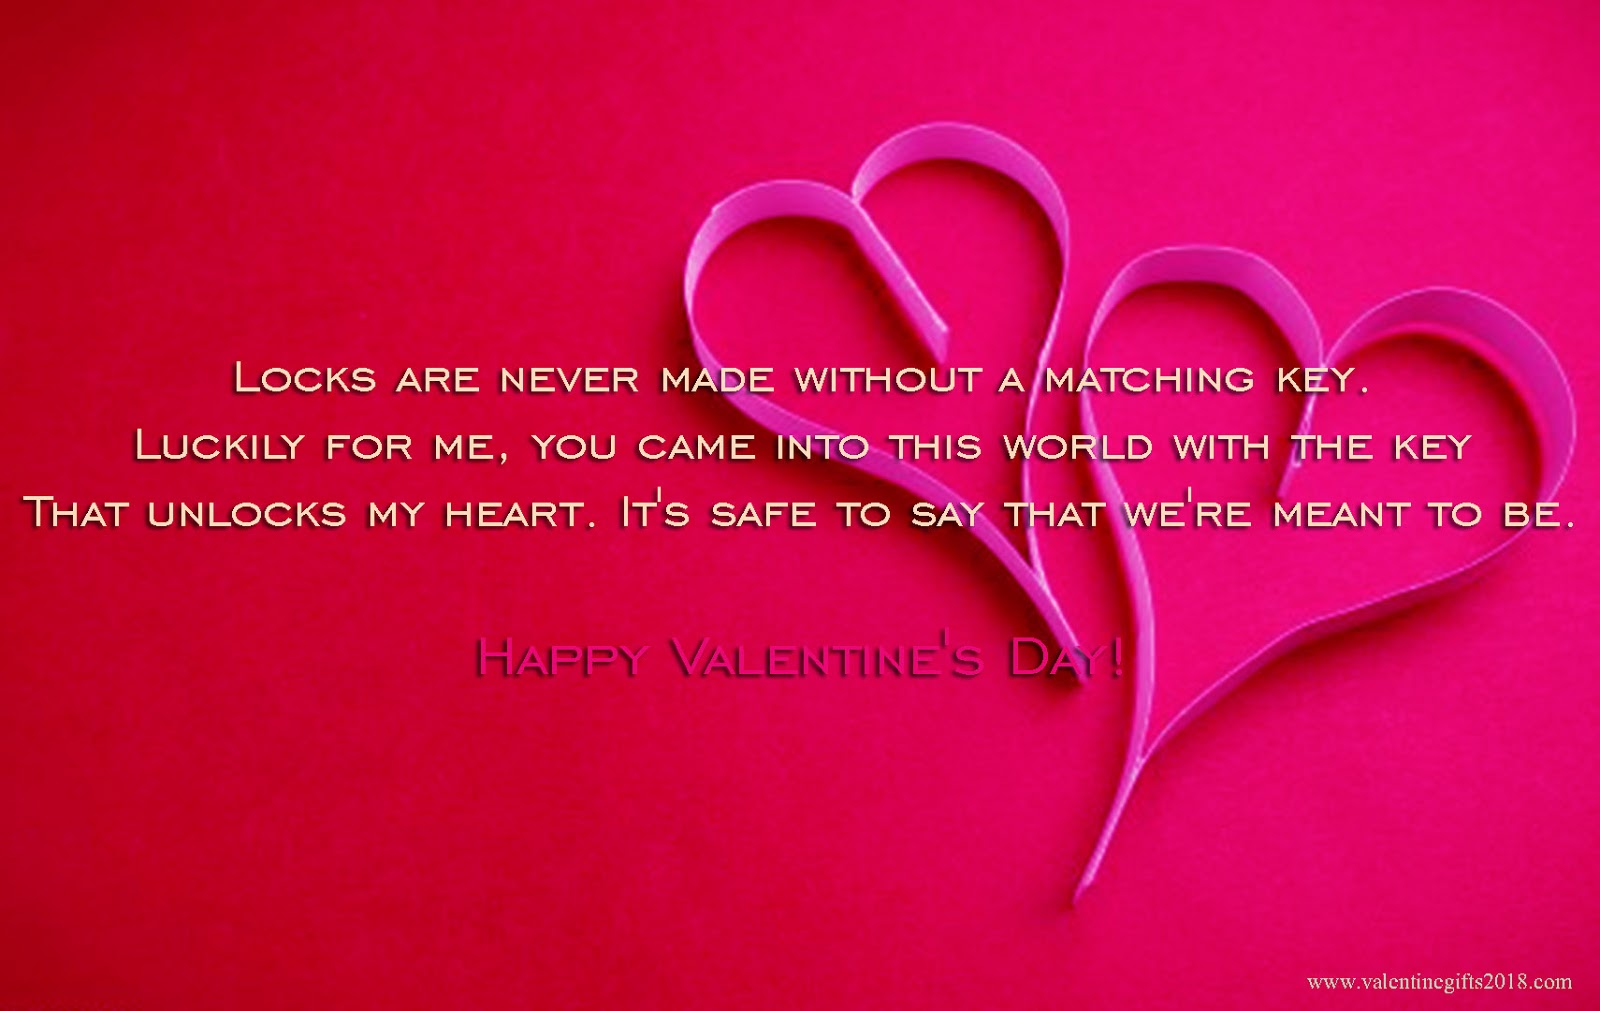 locks are never made without a matching key luckily for me you came into this world with the key that unlocks my heart its safe to say that were meant - Valentines Messages For Him